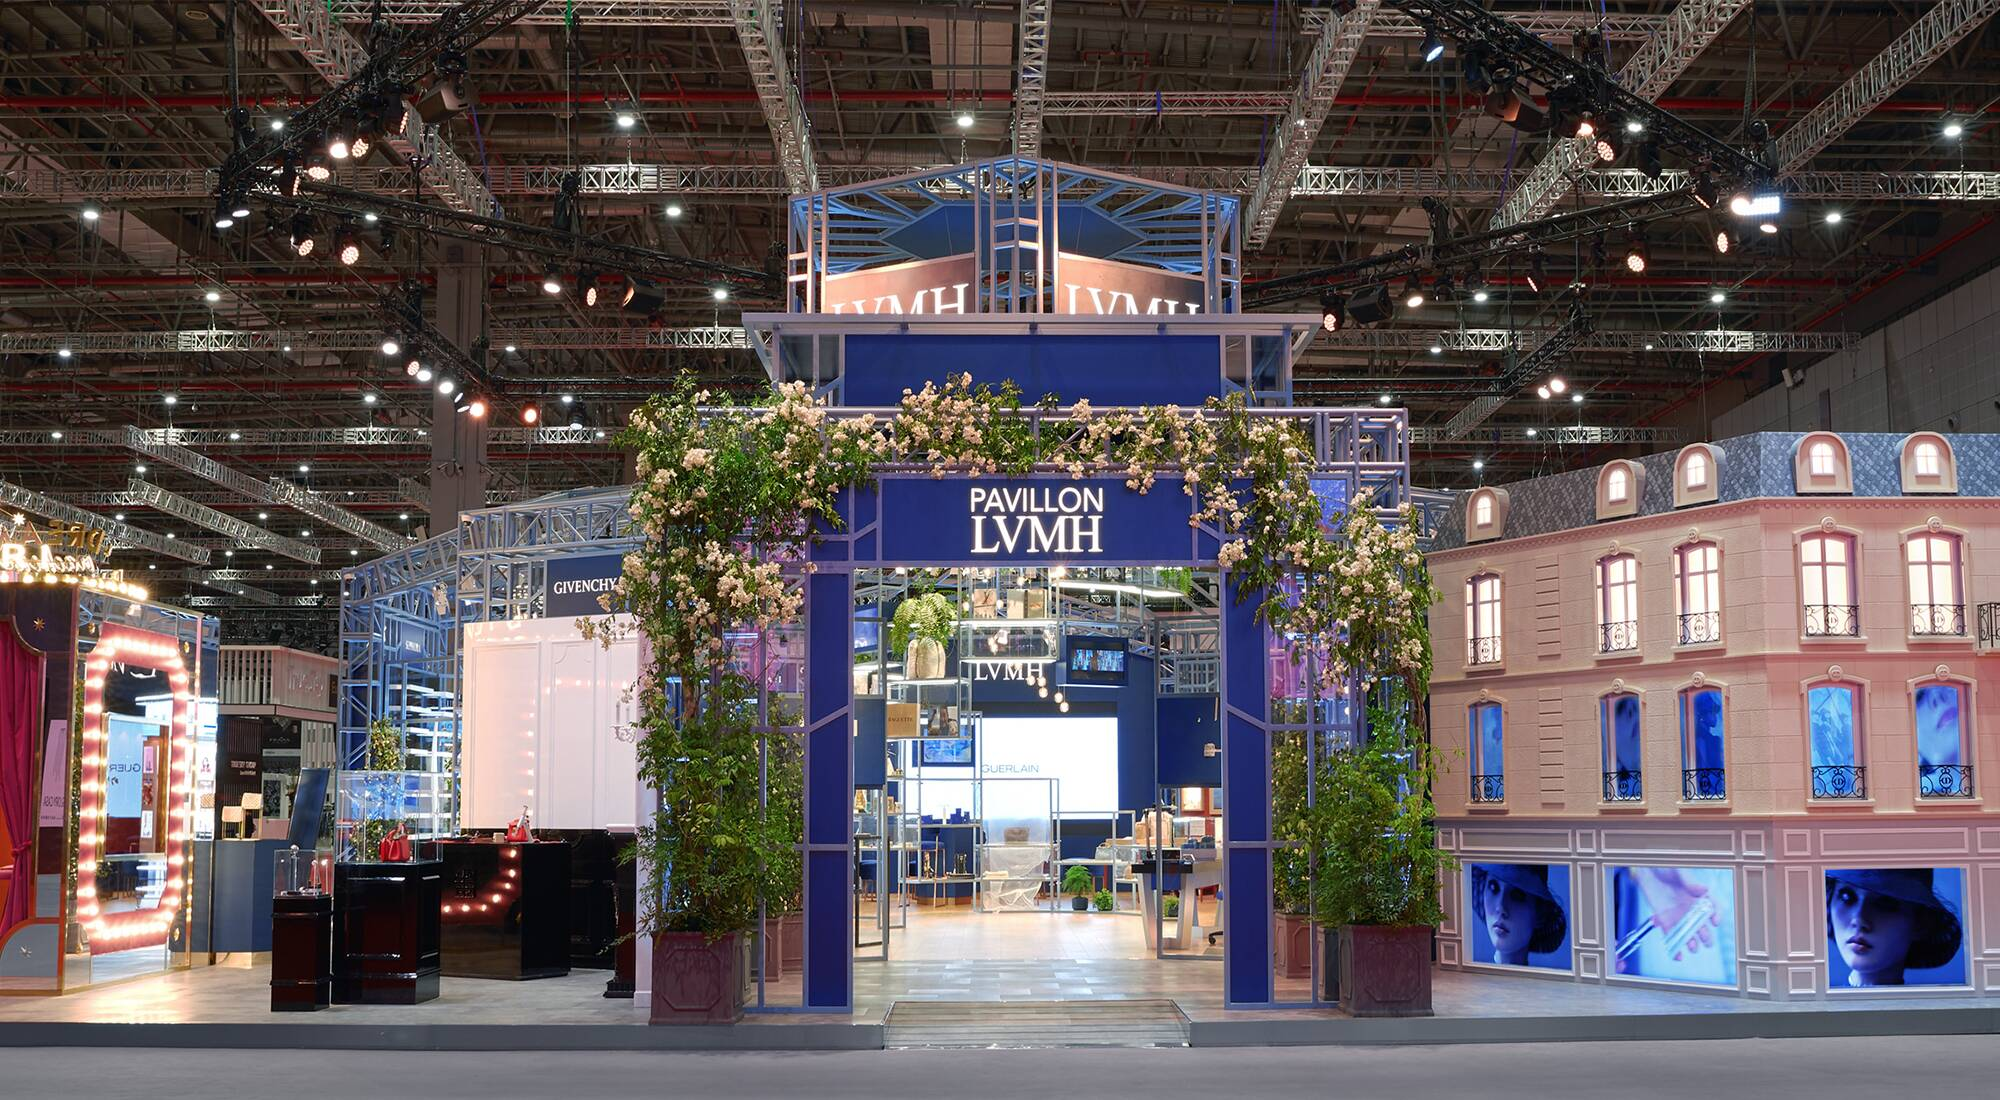 The LVMH pavilion at the second edition of China International Import Expo in Shanghai